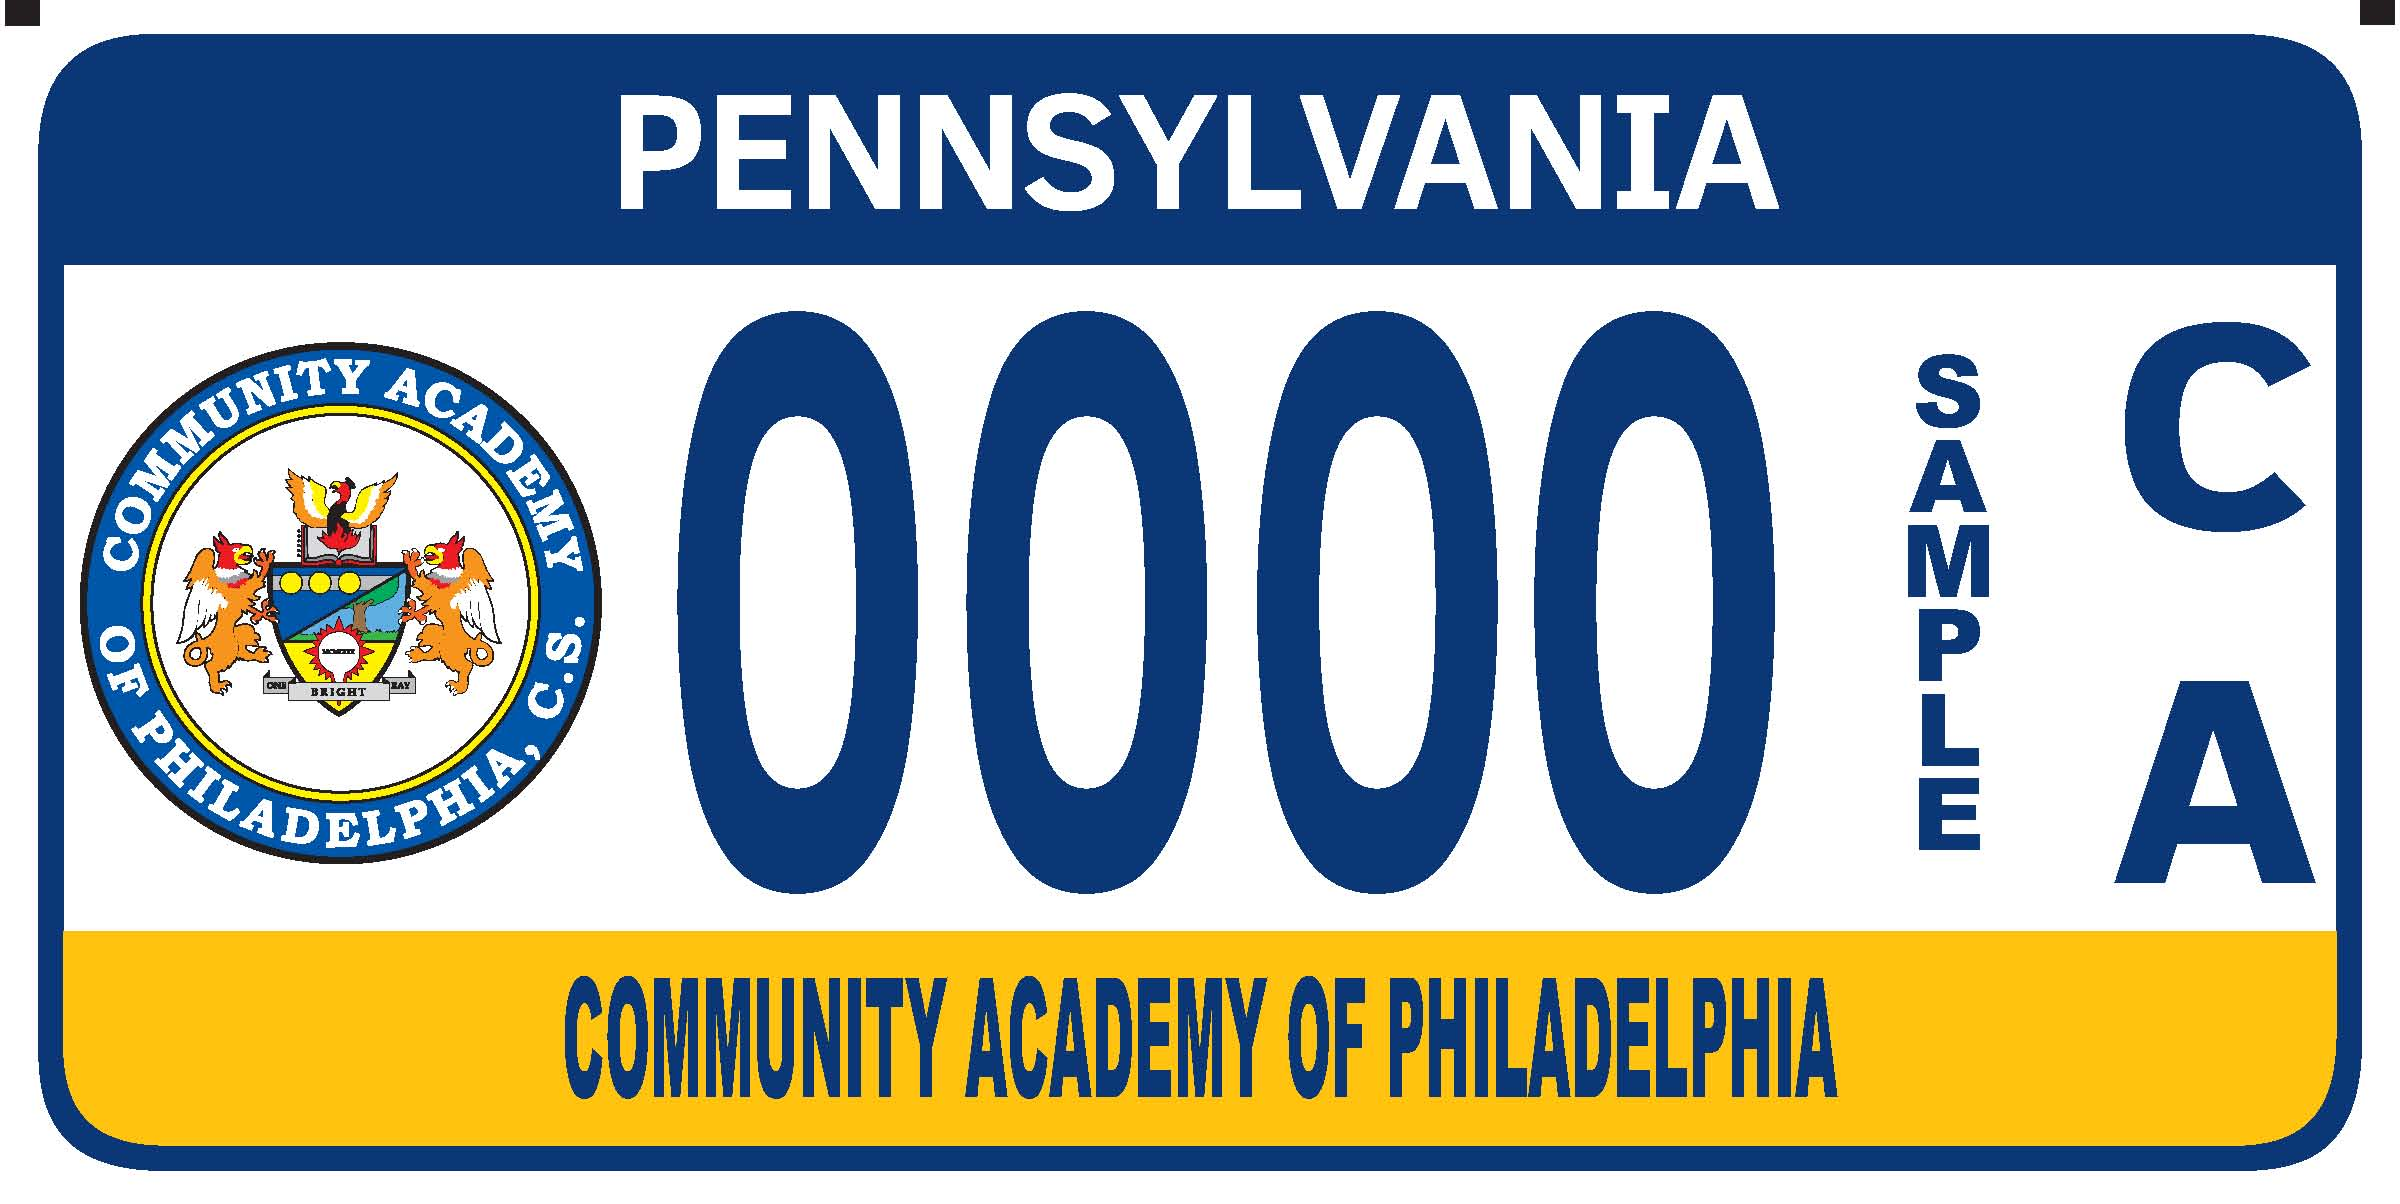 Community Academy of Philadelphia